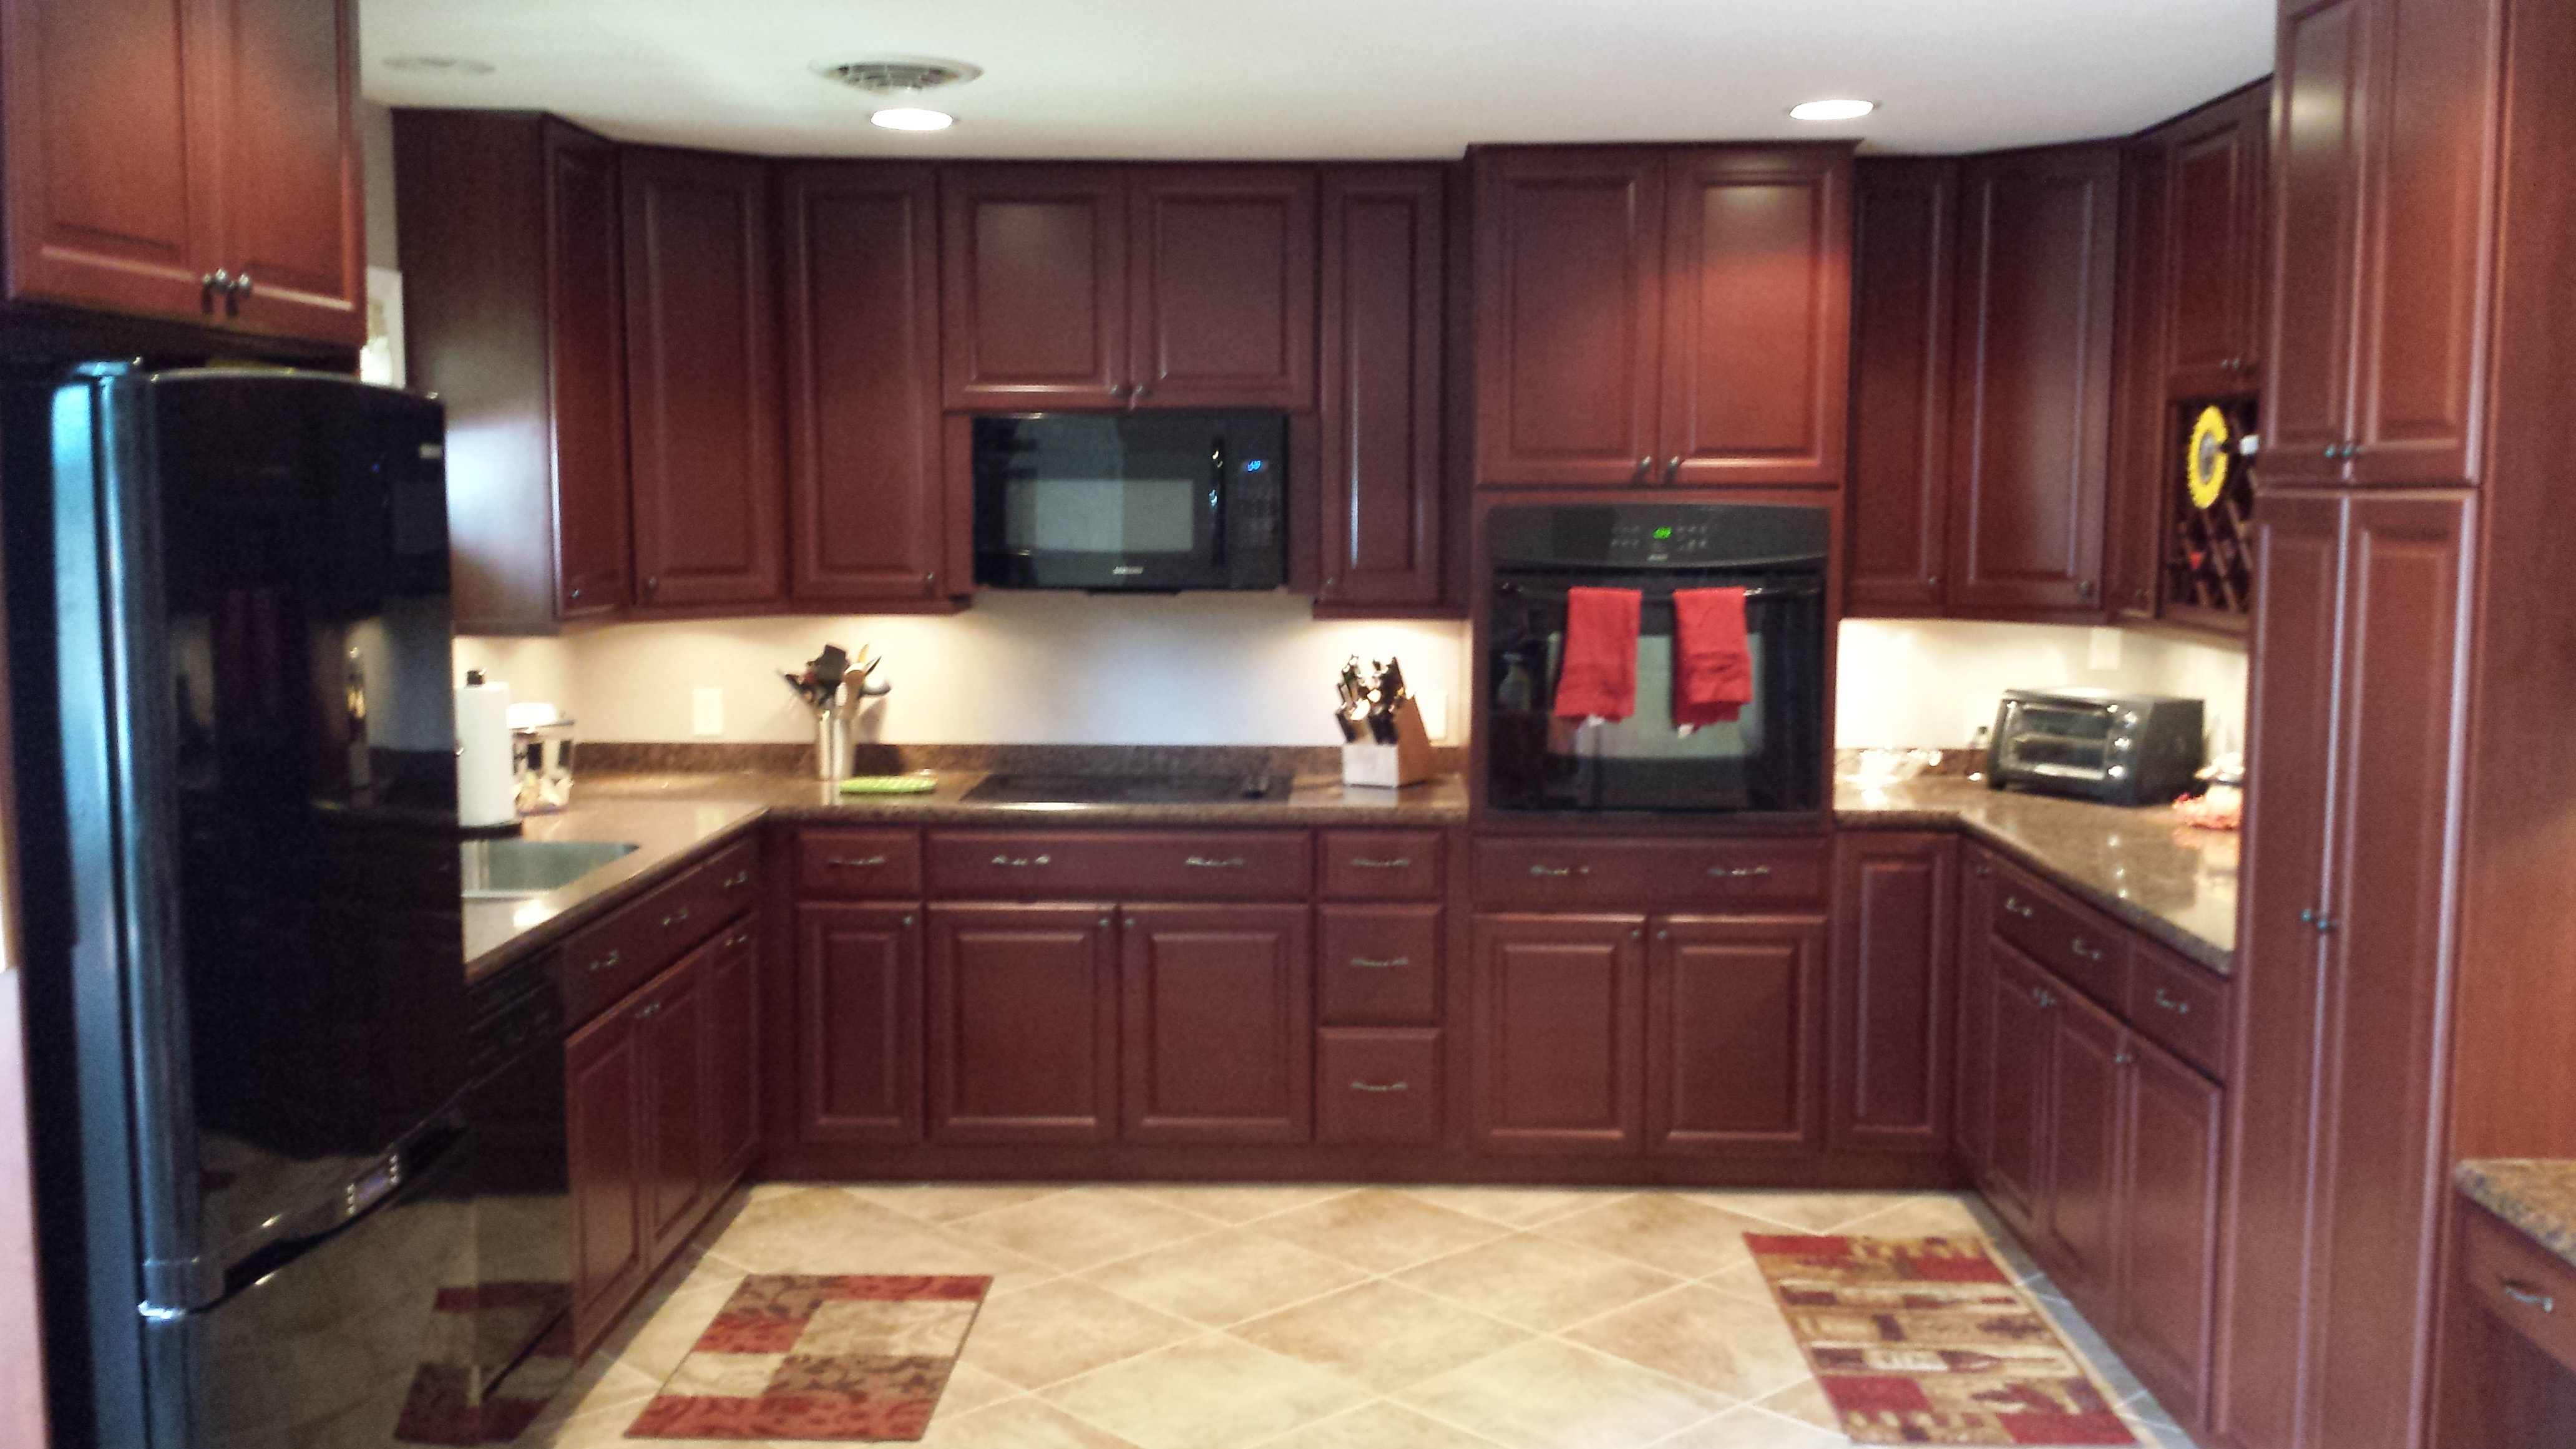 Accurate Upgrades Home Improvements LLC image 21